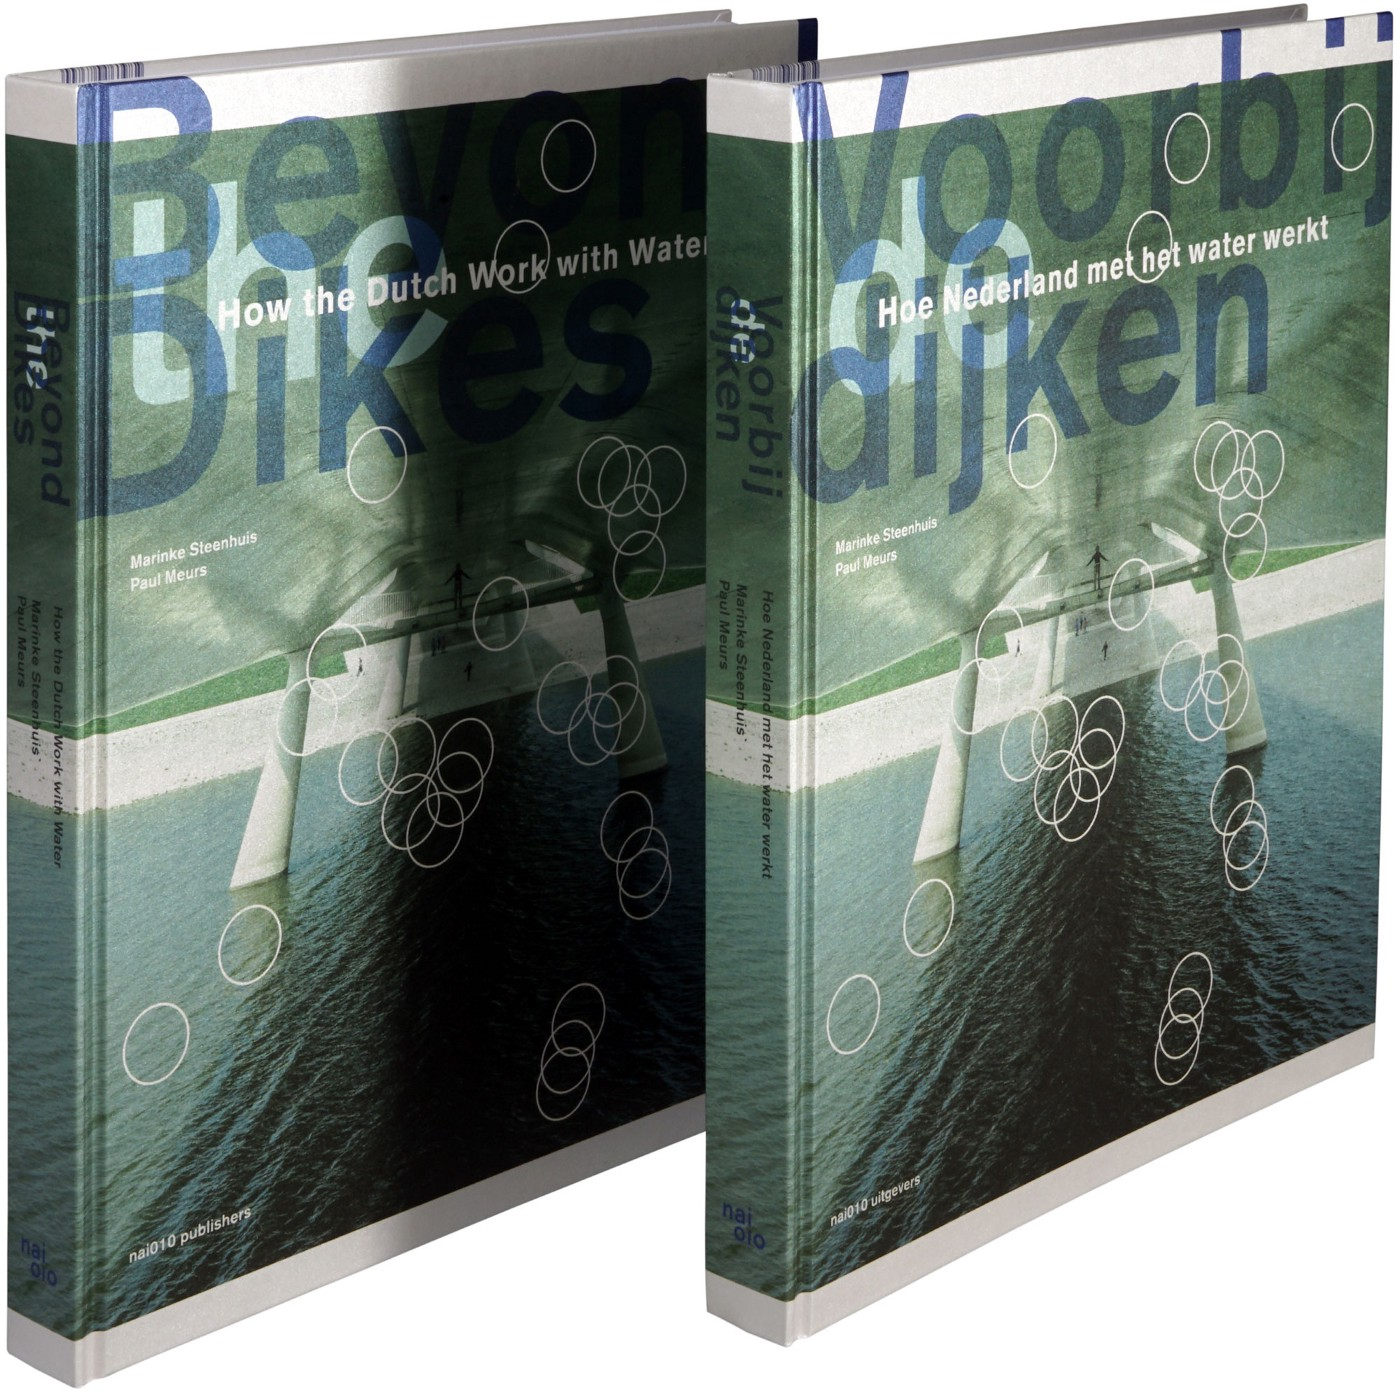 Photo of the greenish book cover diagonally stood-up showing the English cover on the left and the Dutch version on the right